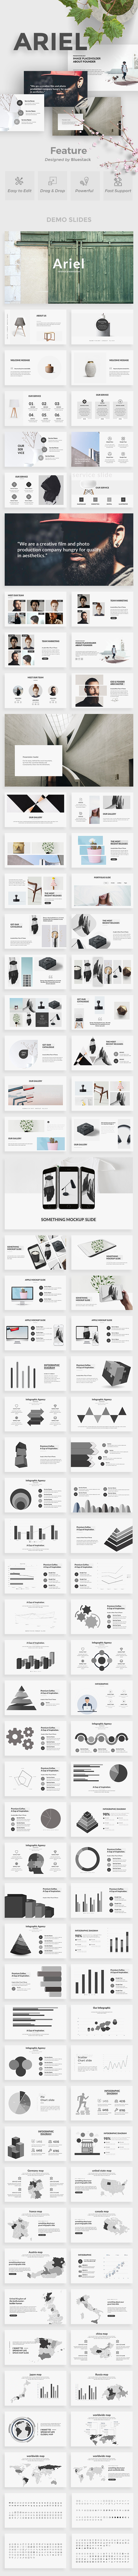 Ariel Minimal Powerpoint Template - Creative PowerPoint Templates